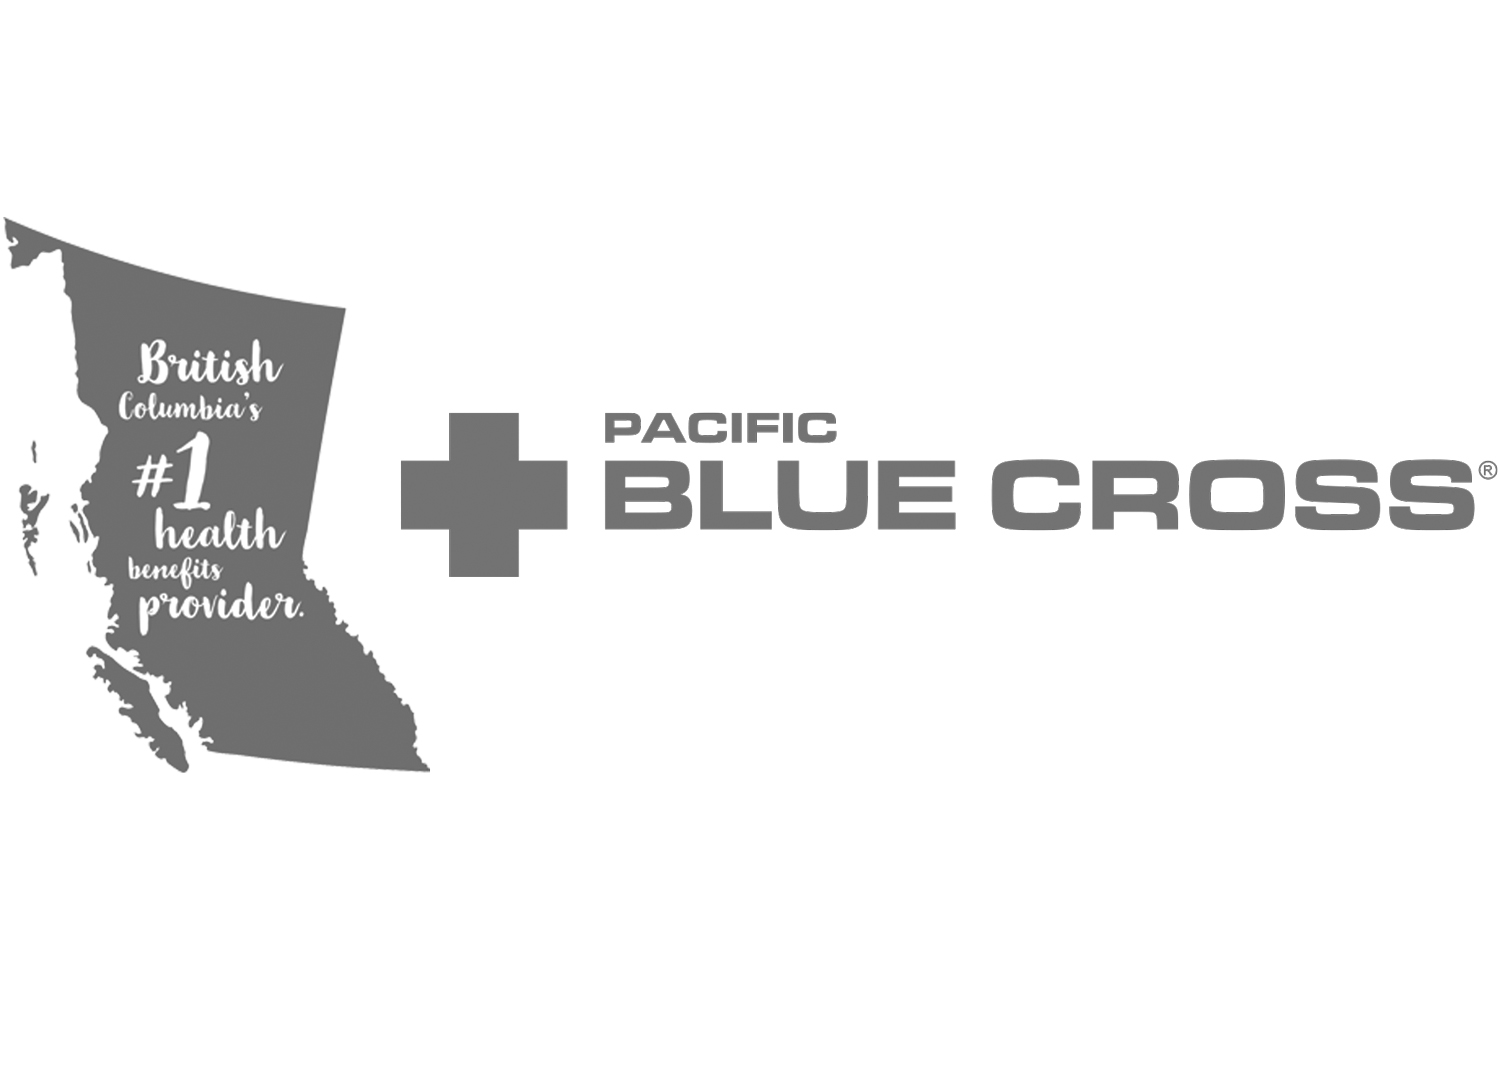 Pacific Blue Cross end user logo